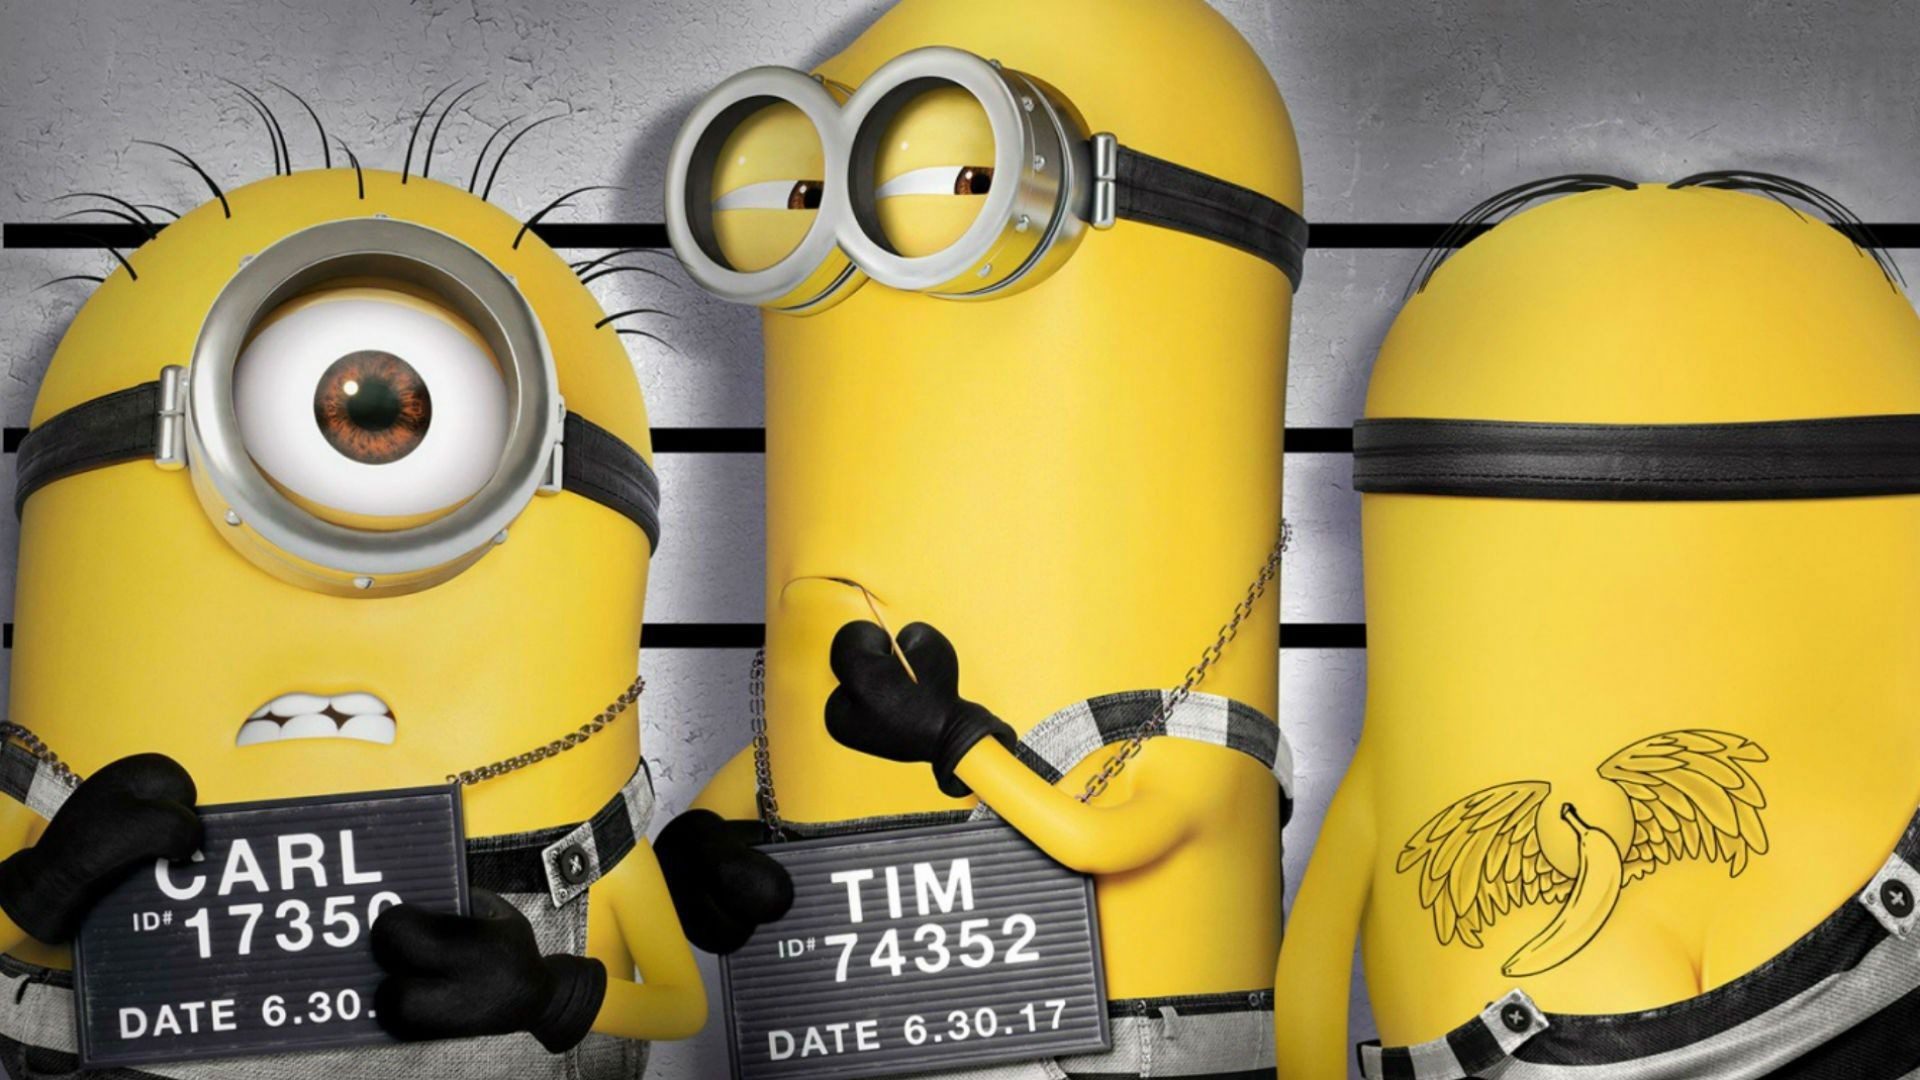 despicable me 3 carl and tim